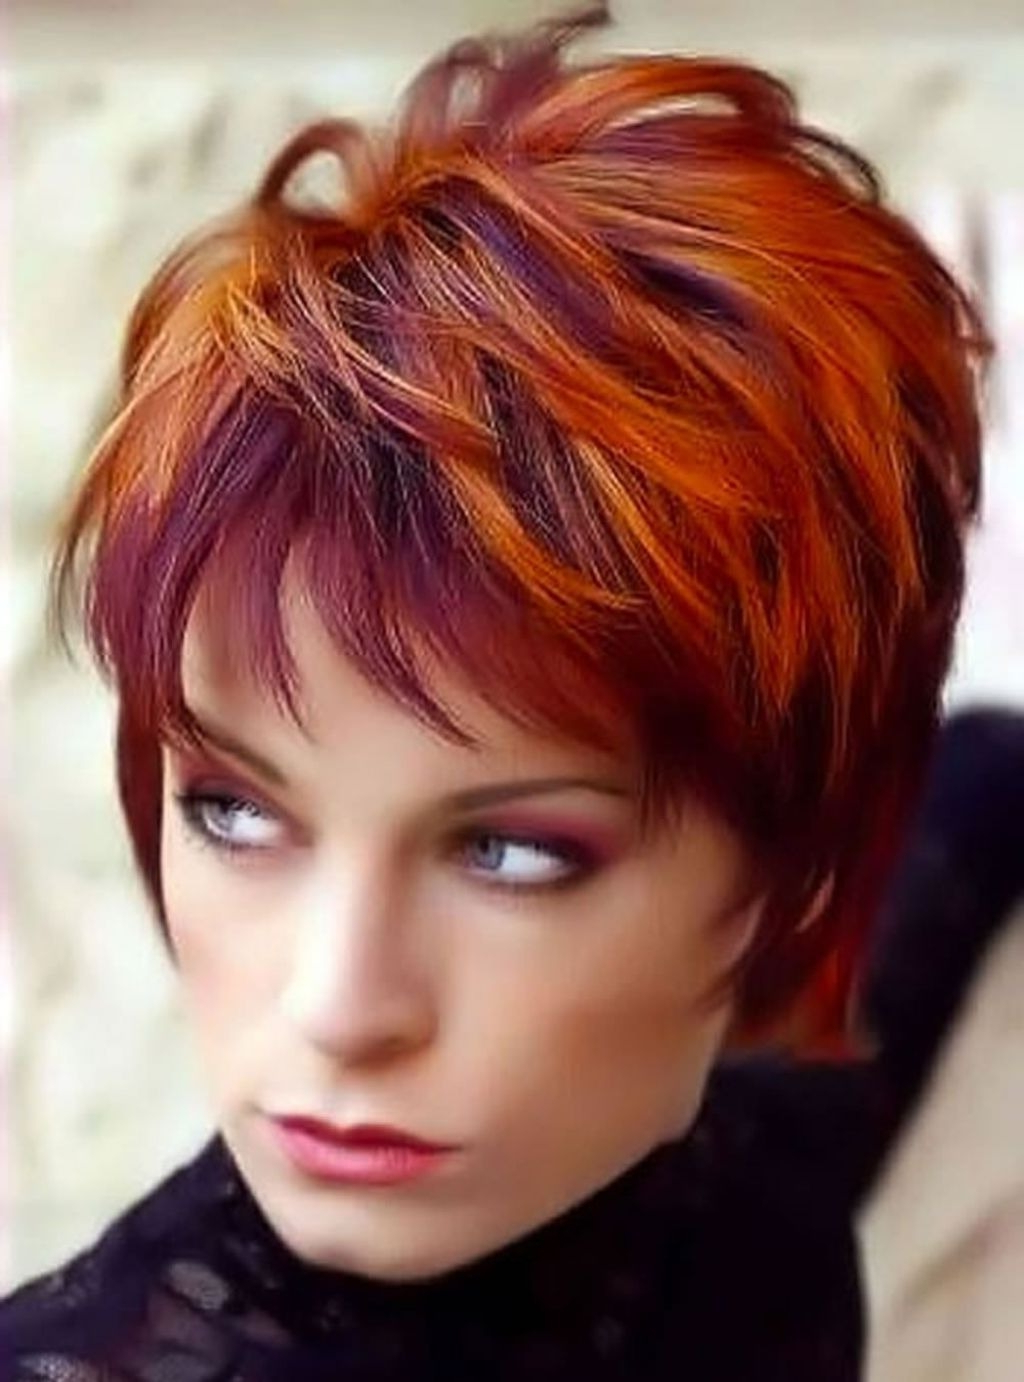 Best Short Haircuts Red Hair For 2018 | Hairstyles Within Short Hairstyles With Red Hair (View 19 of 25)